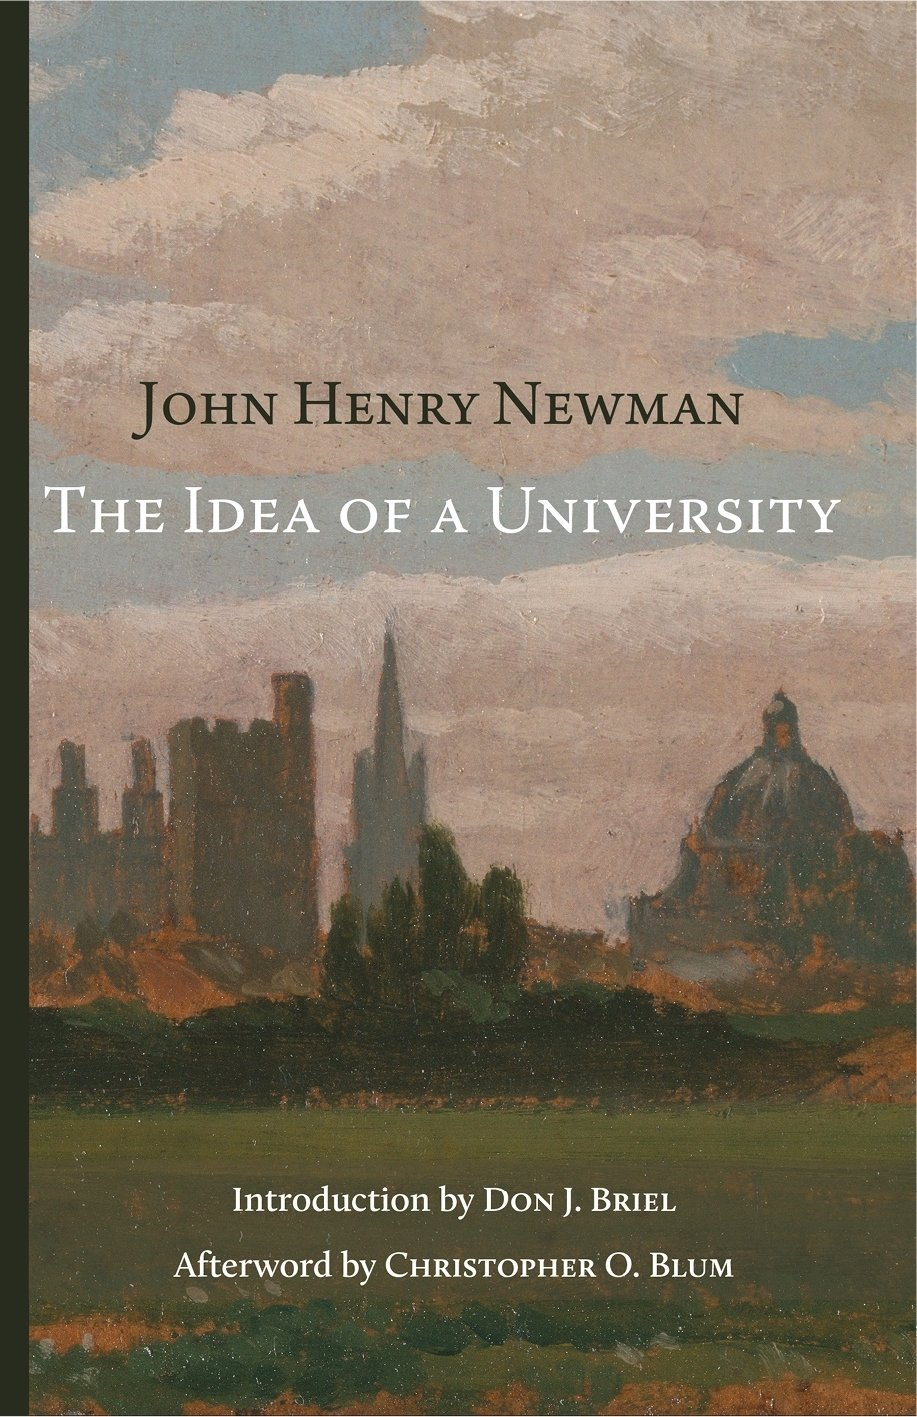 the idea of a university – cluny media